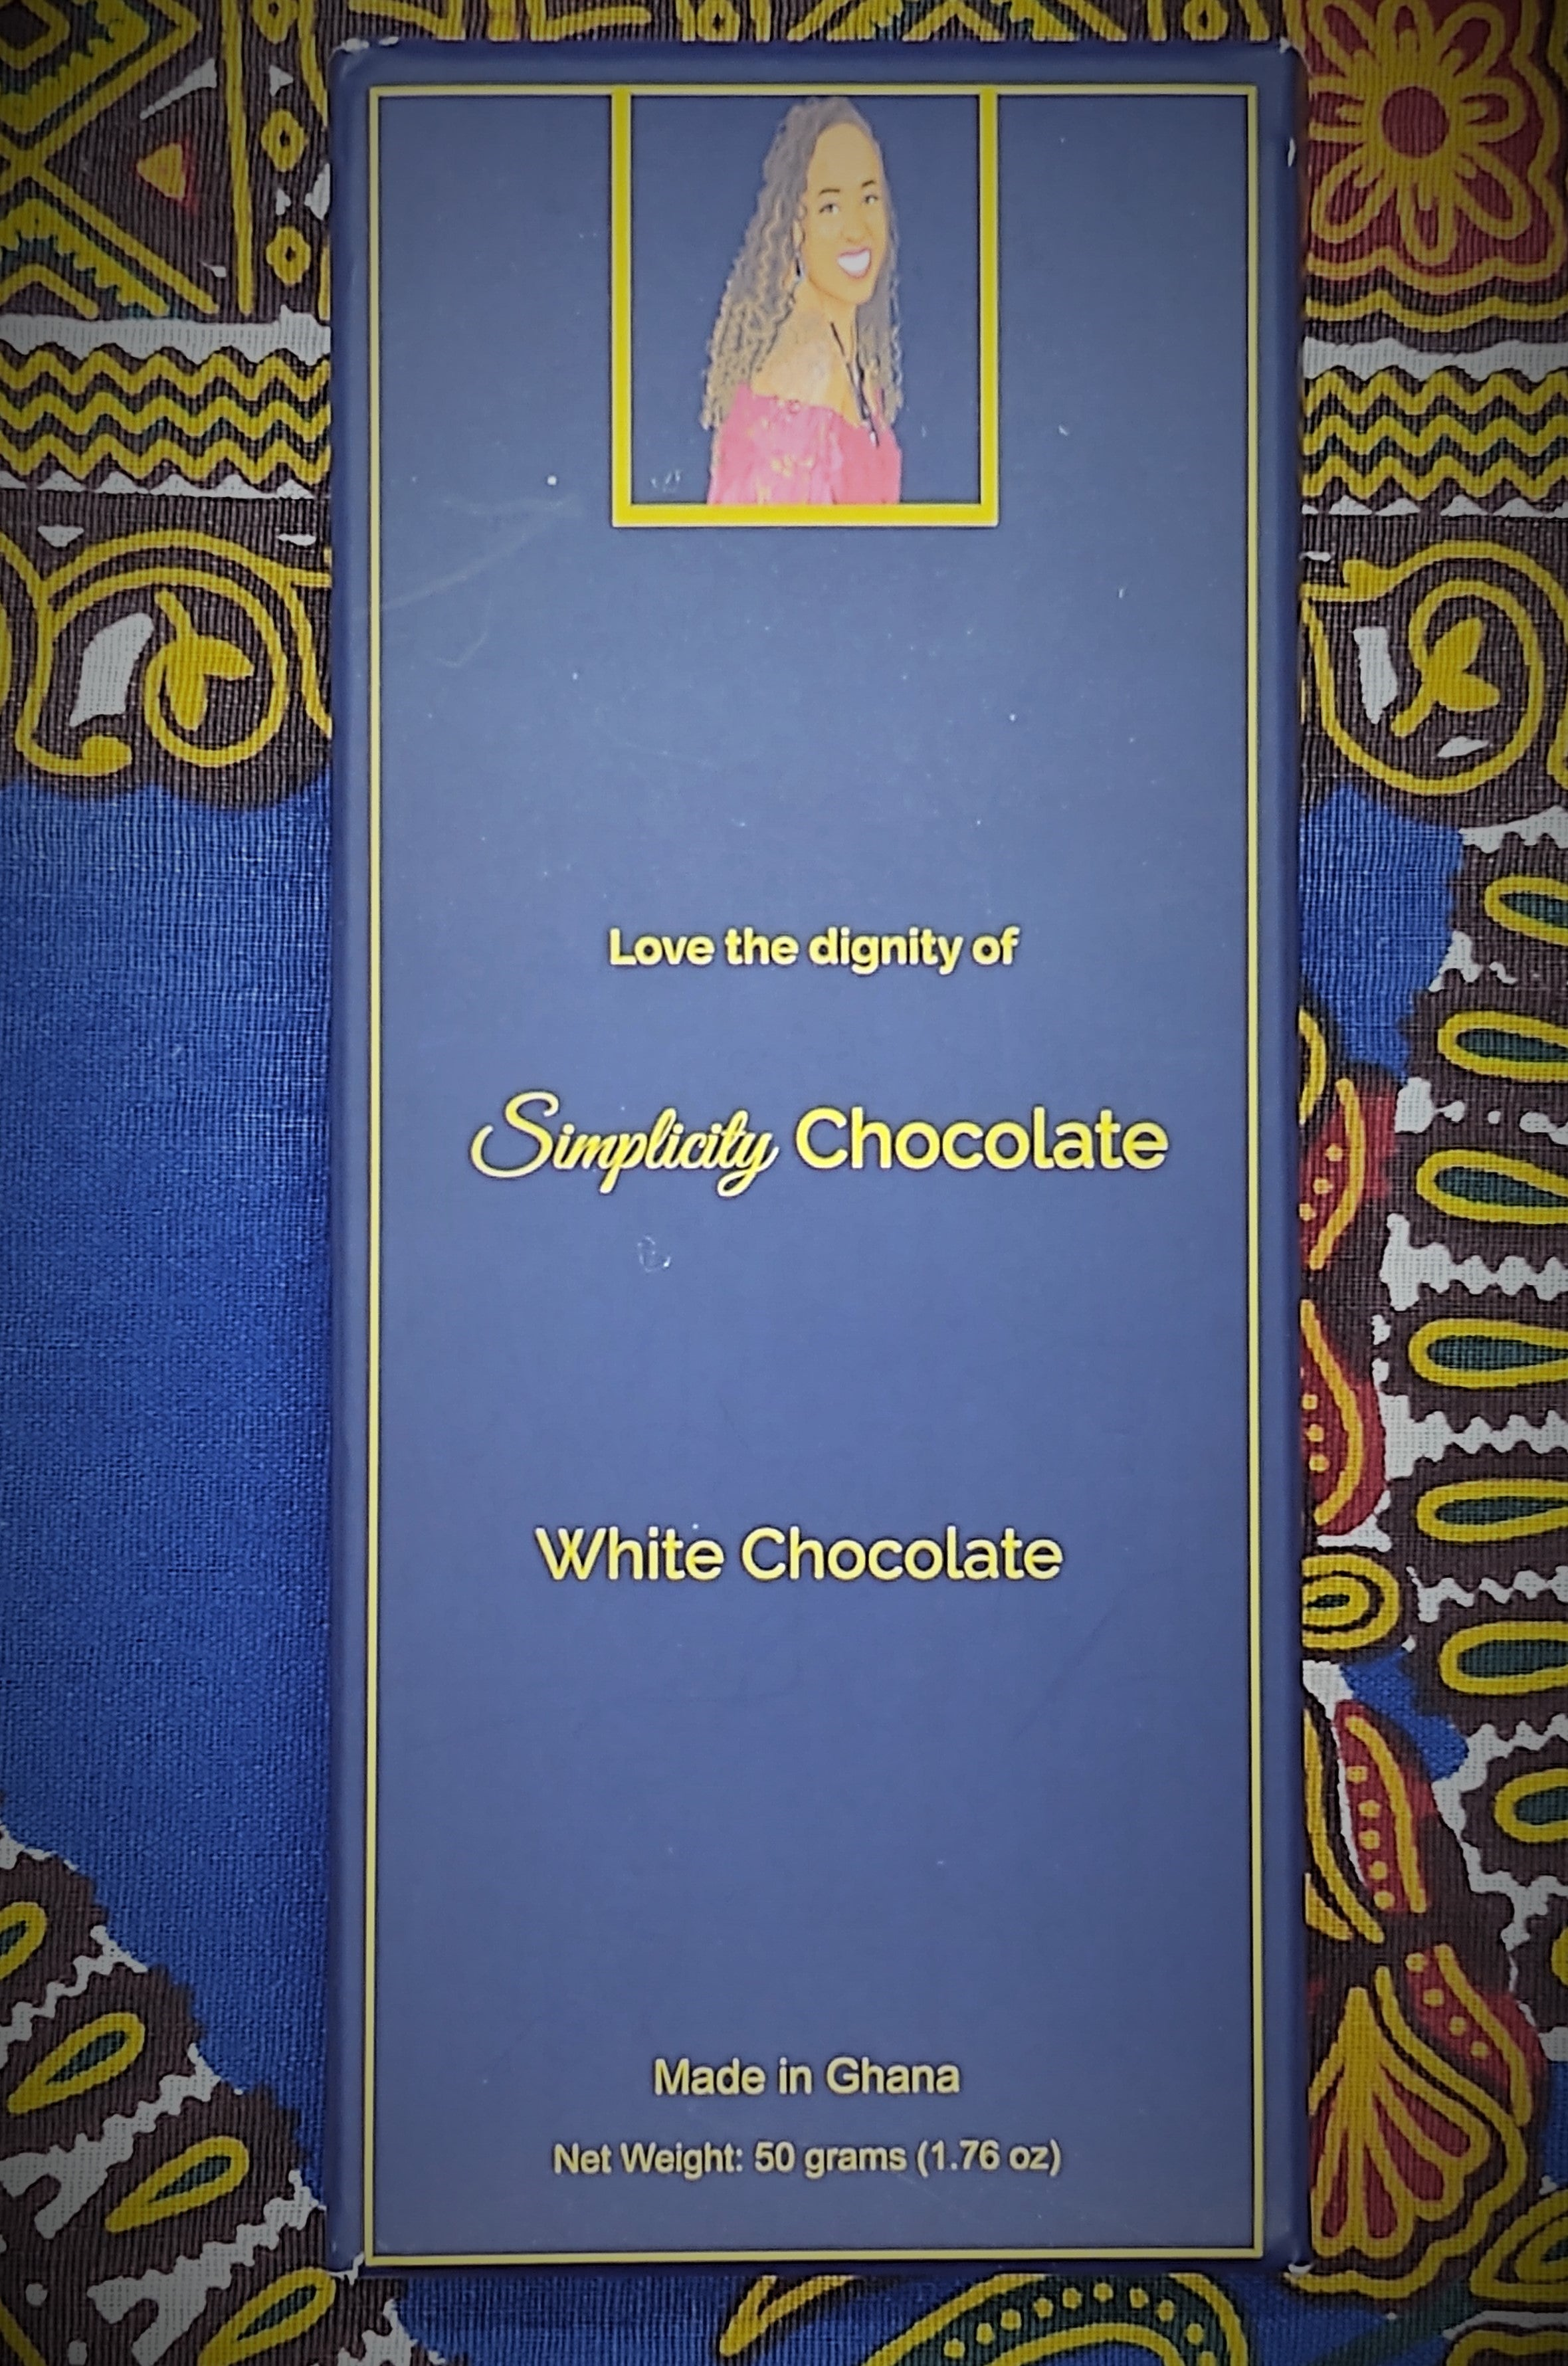 "Pictured: The Simplicity Chocolate bar wrapped in complete packaging which consists of a dark blue box with gold writing. A portrait of the CEO is centered at the top of the packaging. The CEO is seated, looking over her right shoulder, wearing a magenta, off the shoulder top and a royal blue gemstone necklace with matching earrings. The packaging reads, ""Love the dignity of Simplicity Chocolate"" in the center of the package. White Chocolate. Made in Ghana. Net Weight: 50 grams (1.76 oz)."